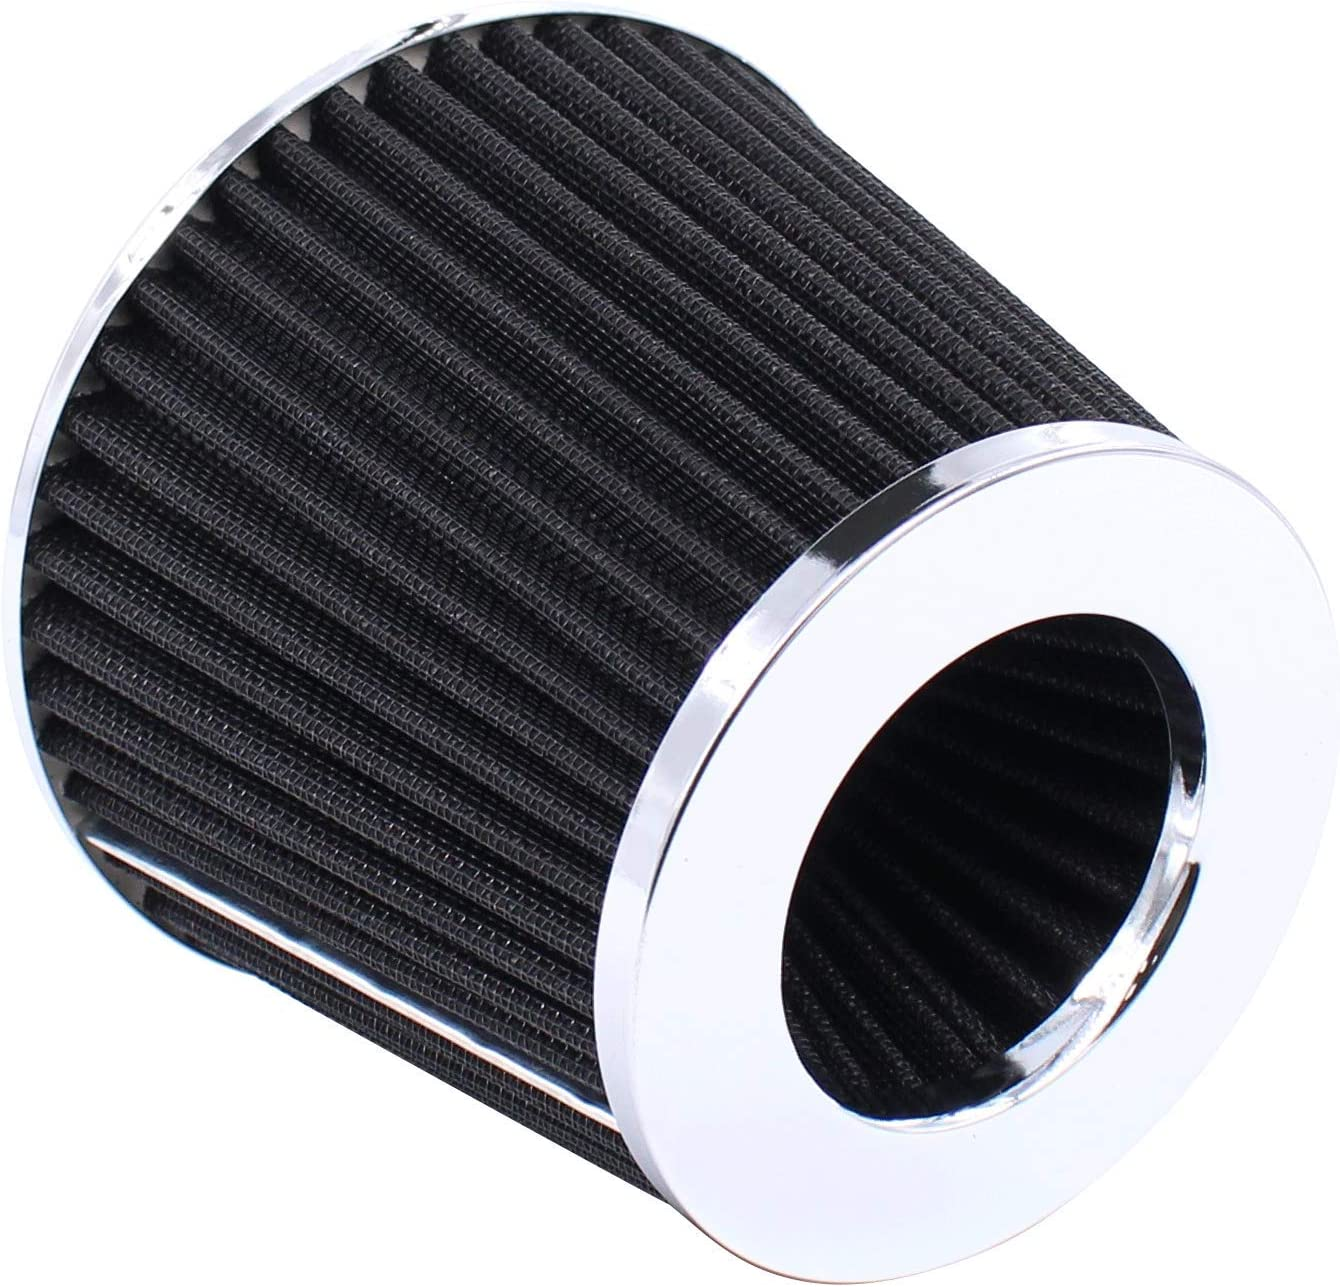 XtremeAmazing 3 Inch 76mm Cold Air Intake Cone Filter Inlet Universal Replacement Black